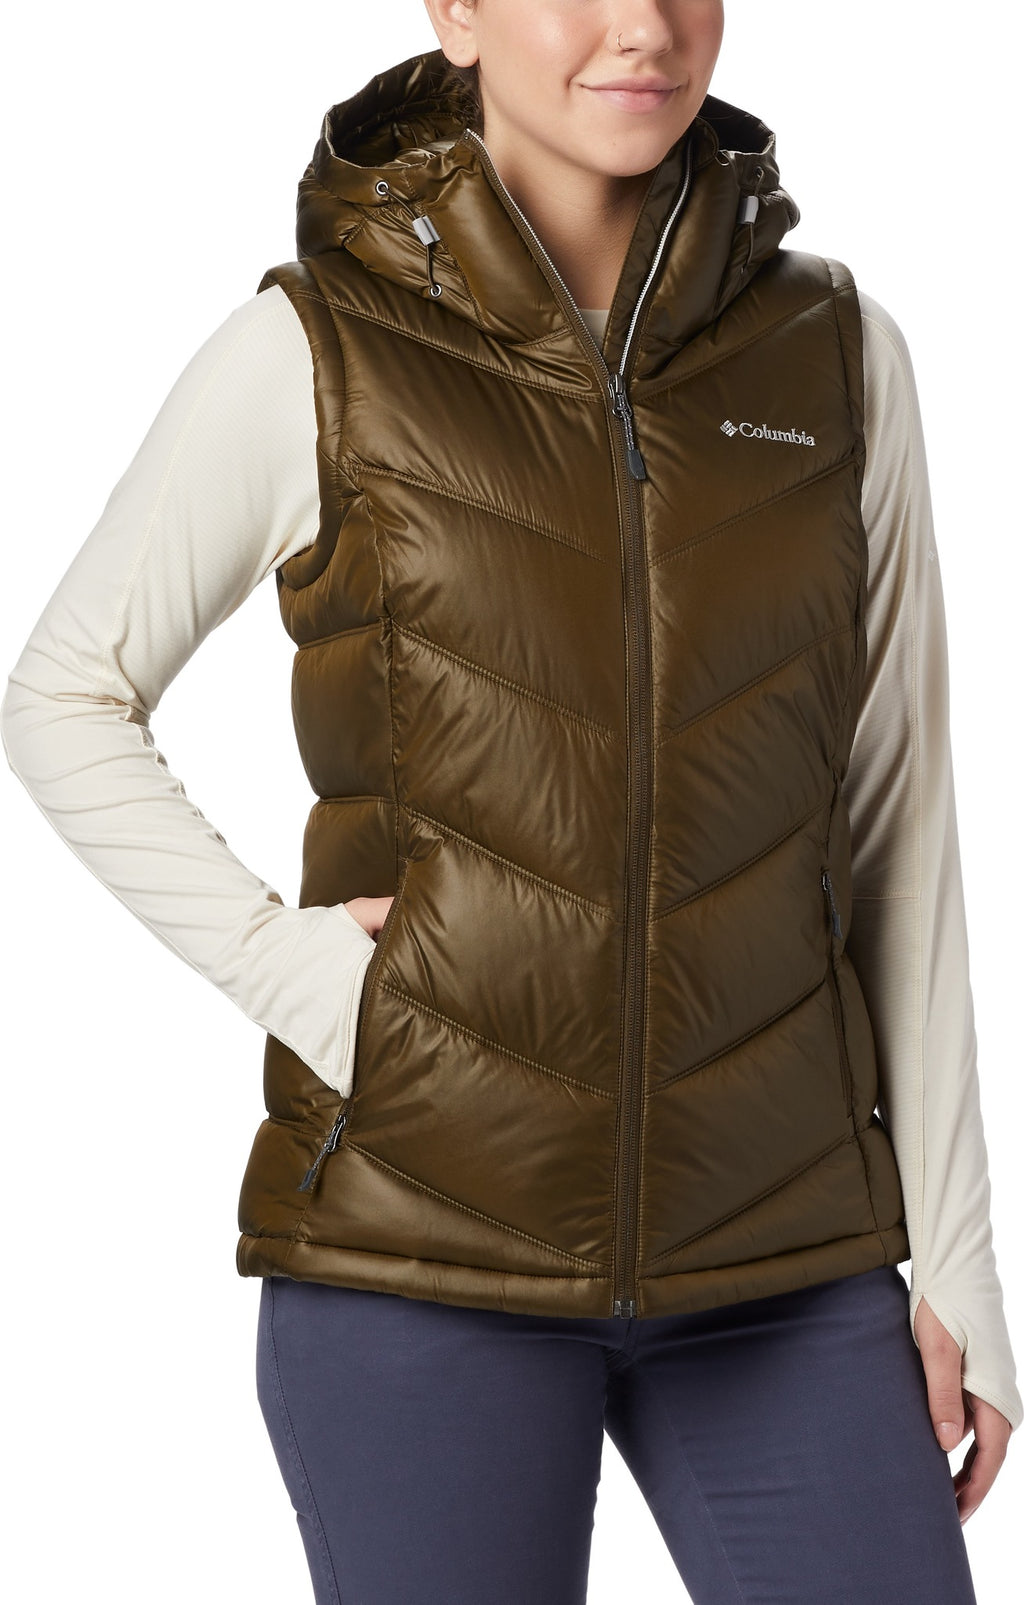 Image result for pike lake hooded vest green womens